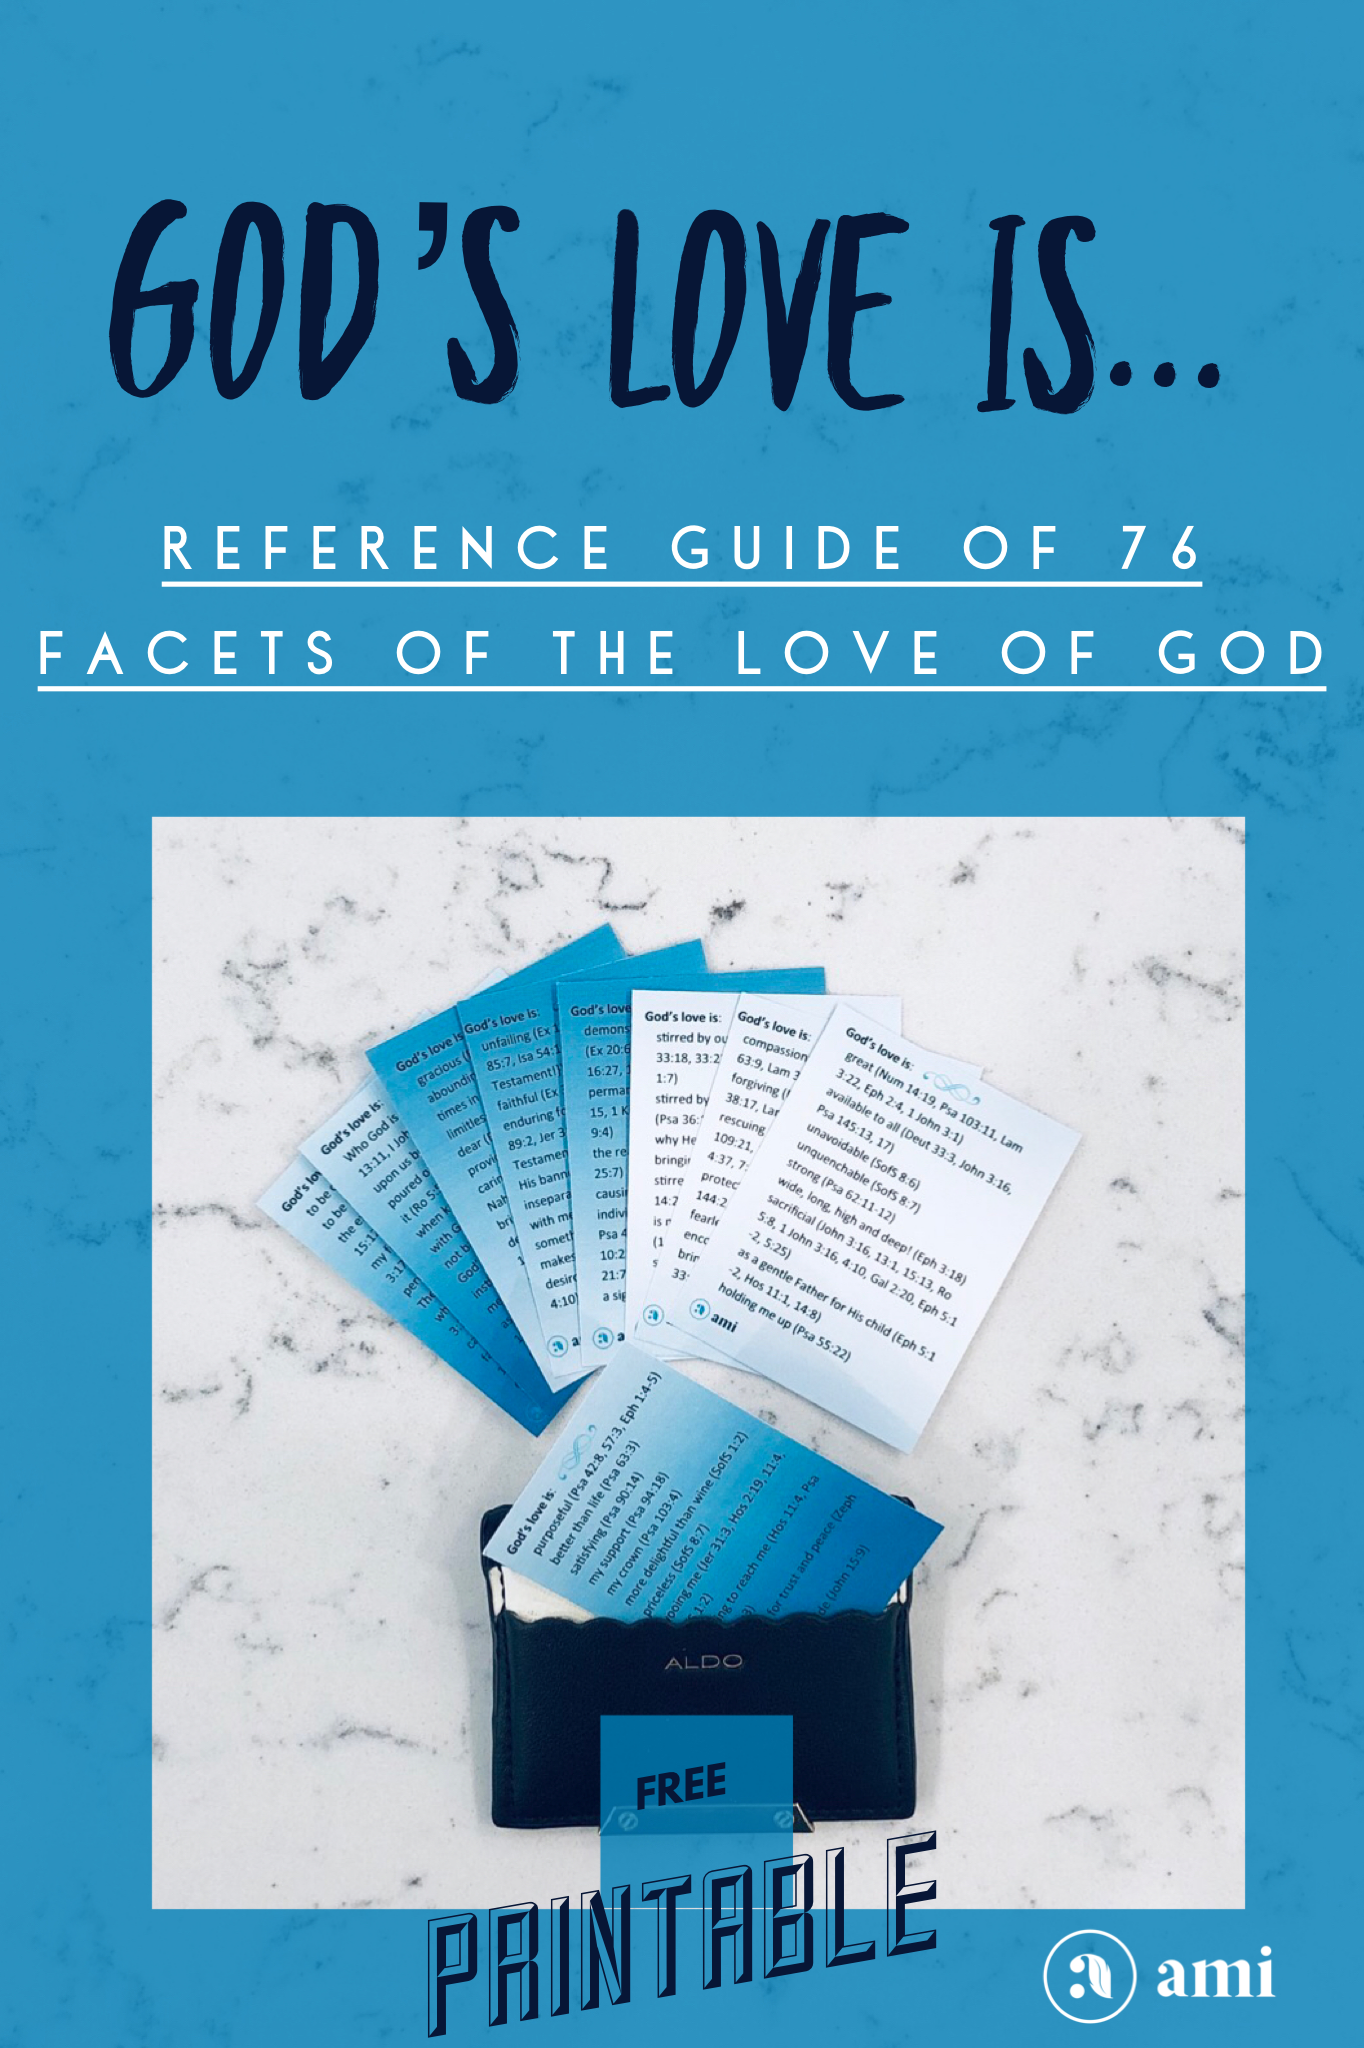 Scriptural Truths to CHANGE your life! Knowing God loves you is the foundation for your life and until you know it deeply in your soul, you will always be unstable in your faith. Learn the TRUTH and change your life! #GodsLove #FreePrintable #Freebie #Faith